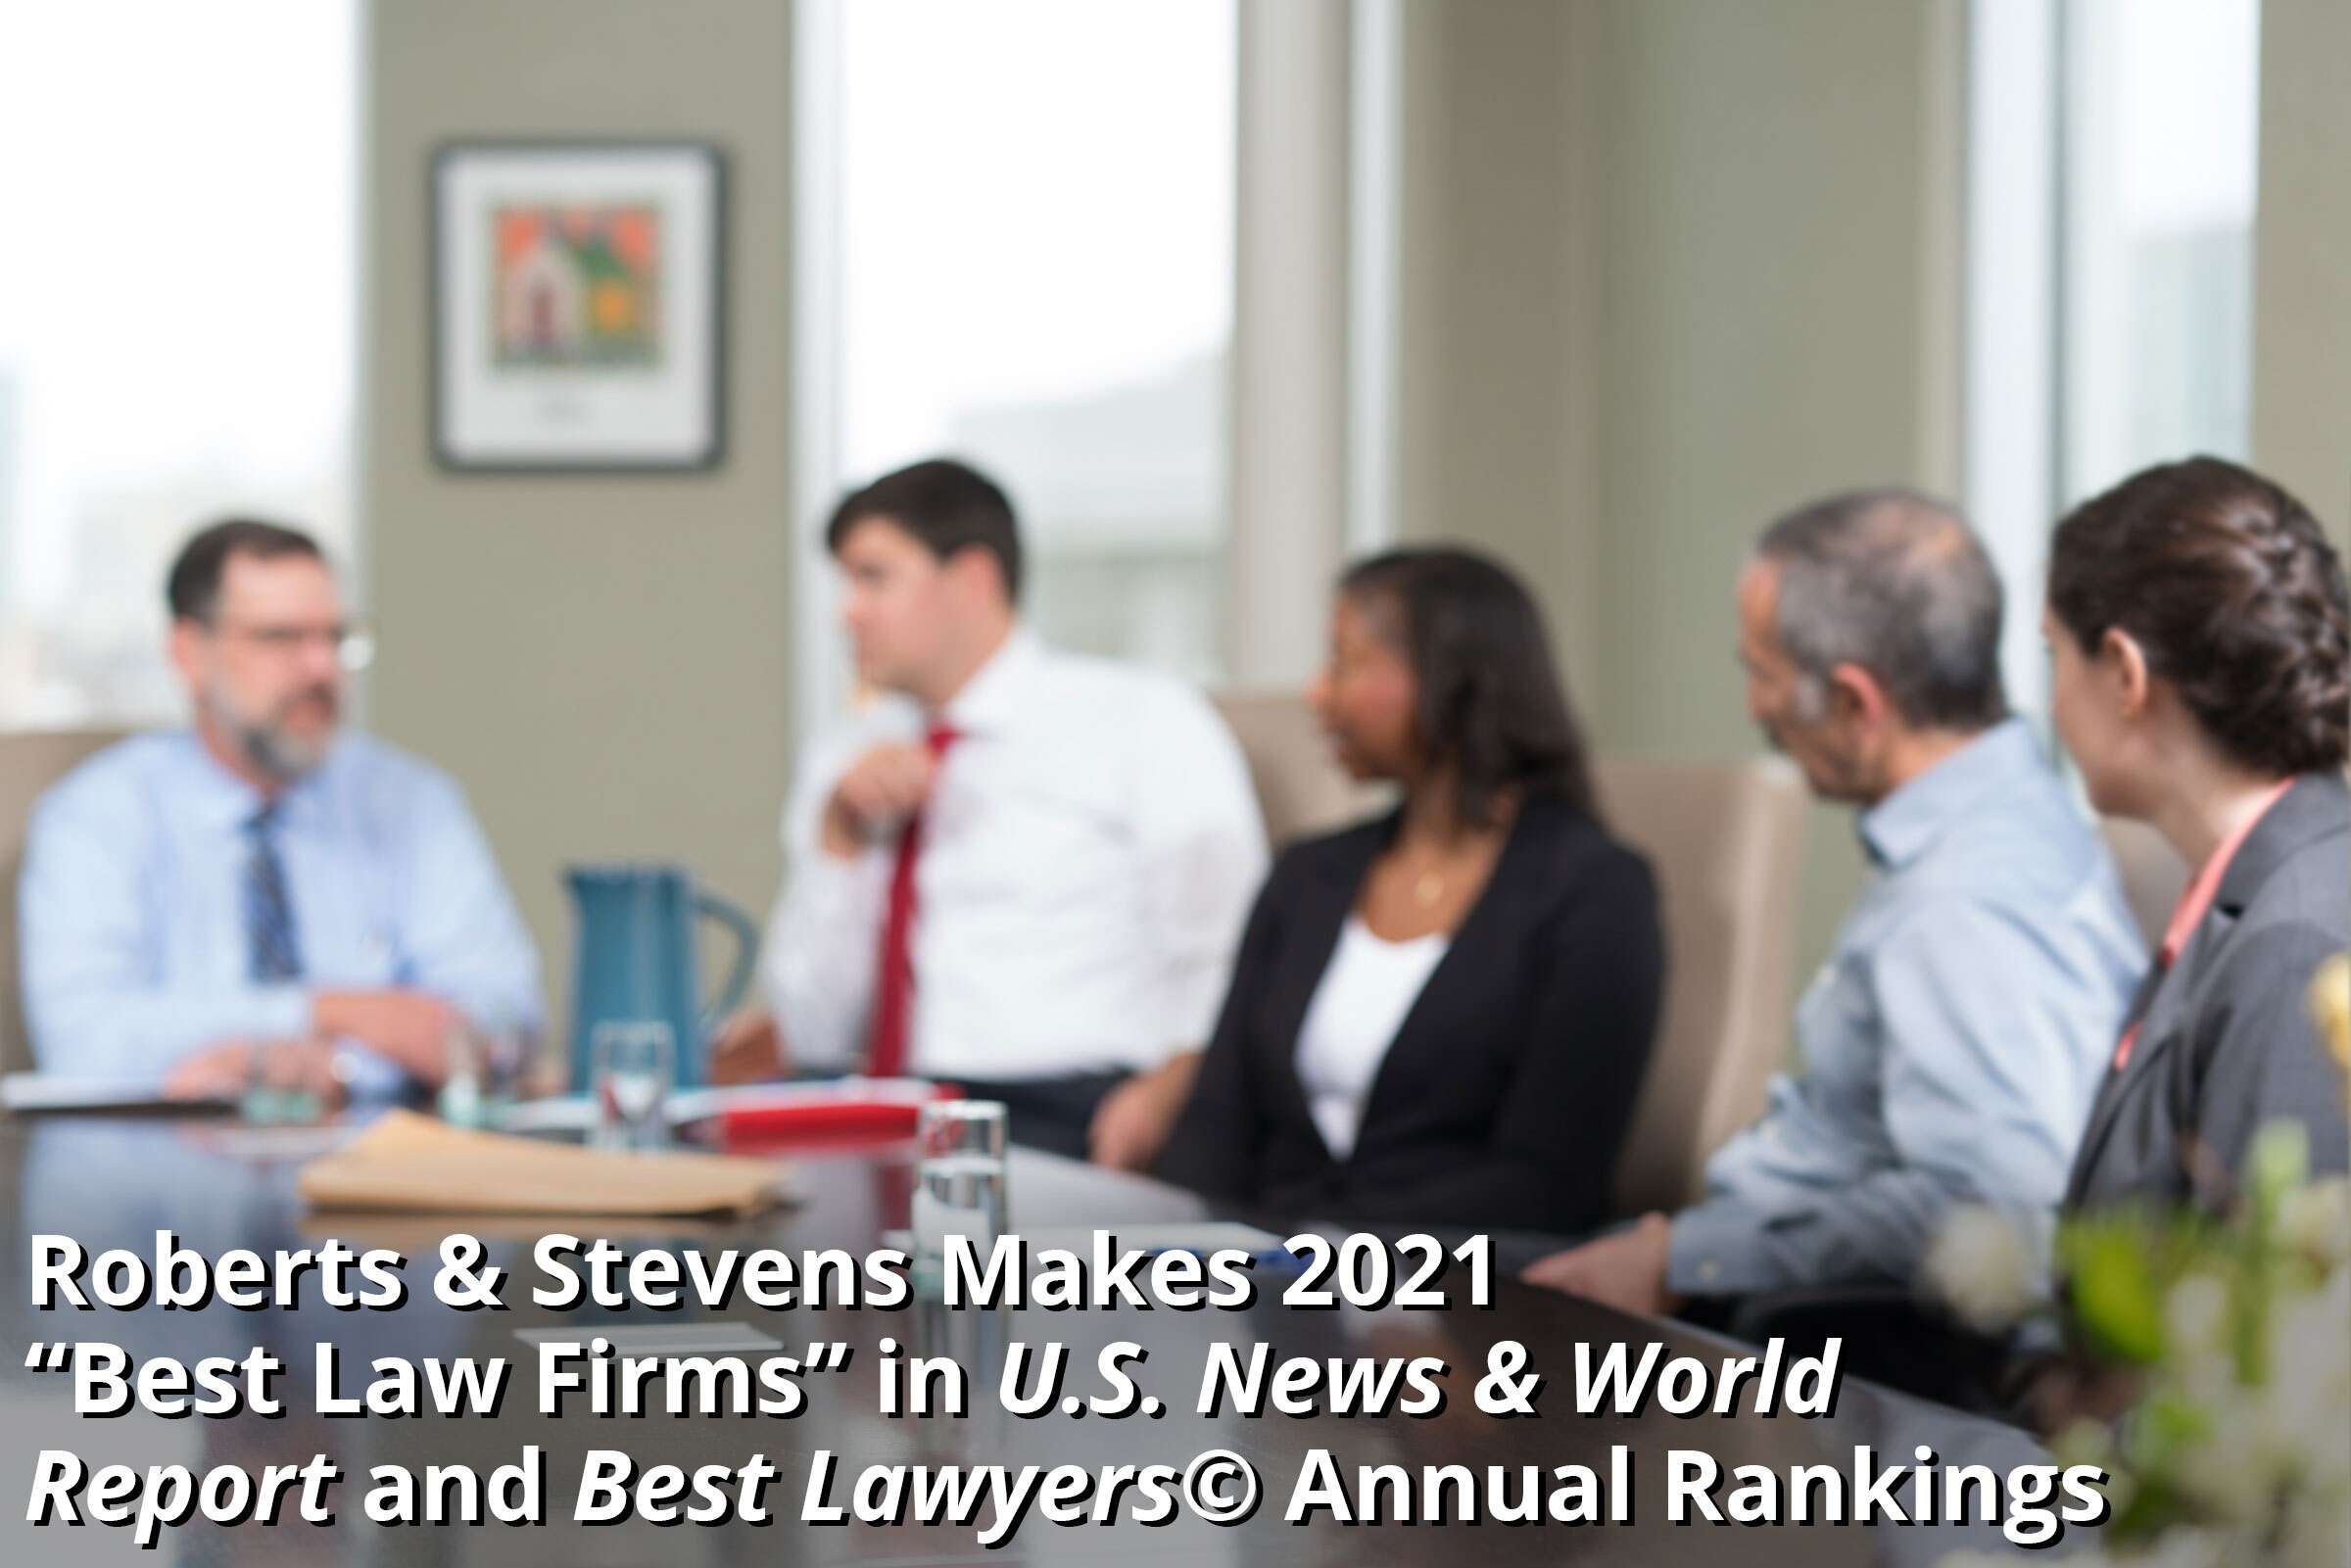 Roberts & Stevens 2021 Best Law Firm